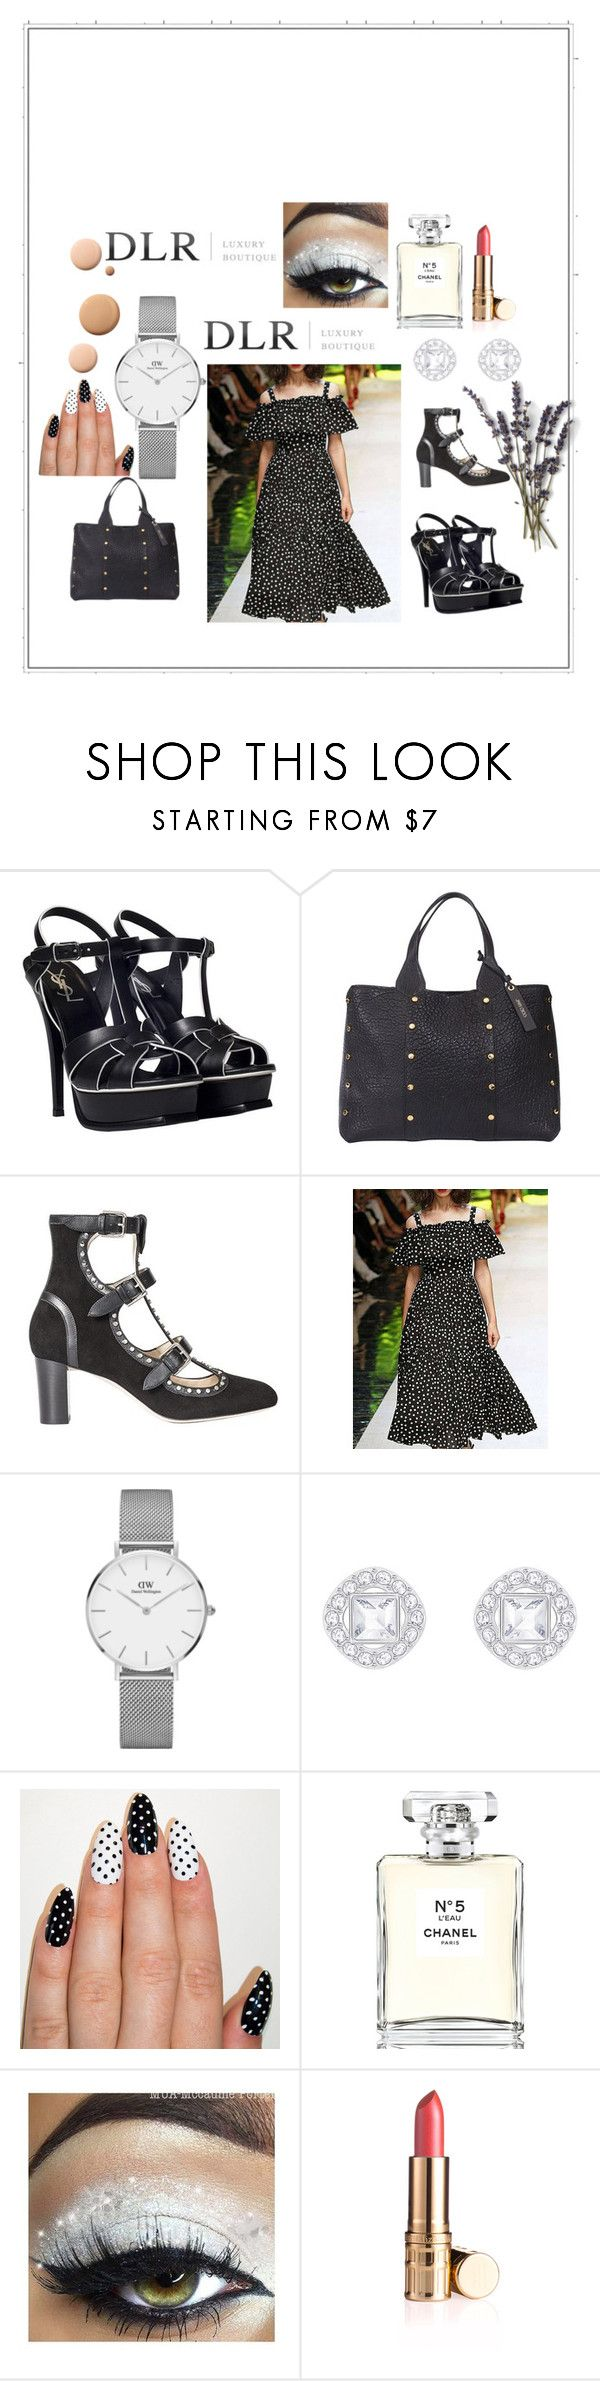 """""""SALES DLRBOUTIQUE"""" by adelisa-388 ❤ liked on Polyvore featuring Yves Saint Laurent, Jimmy Choo, Daniel Wellington, Chanel and CC"""